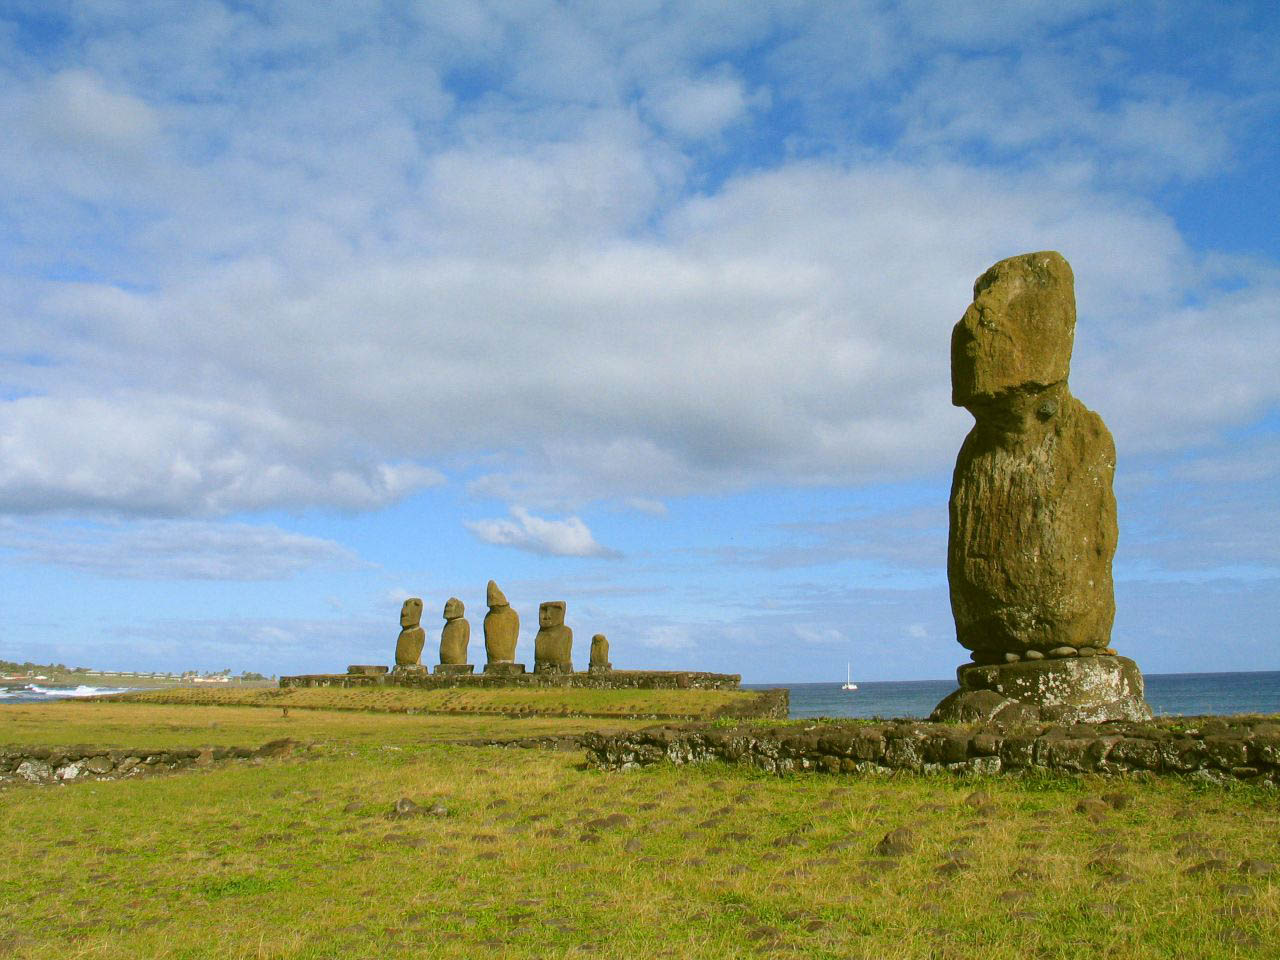 rapa nui3 Gigantic Moai Statues and Heads in Polynesian Easter Island